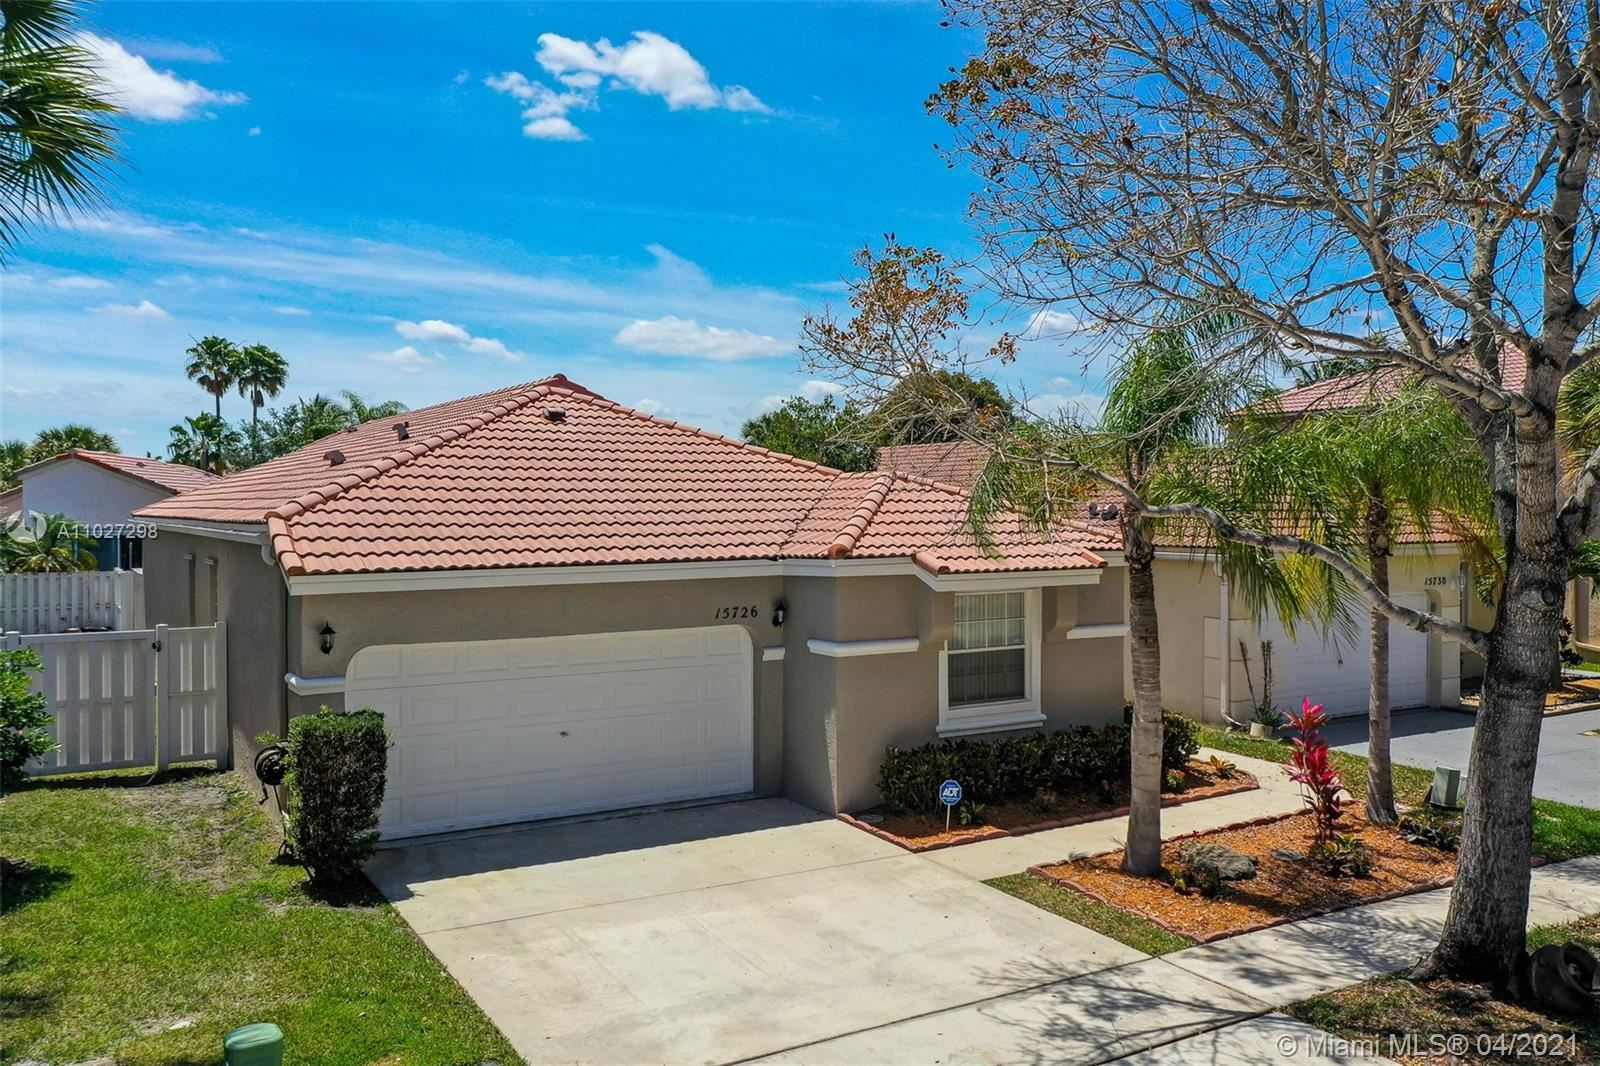 15726 NW 16th Ct, Pembroke Pines, FL 33028 - #: A11027298